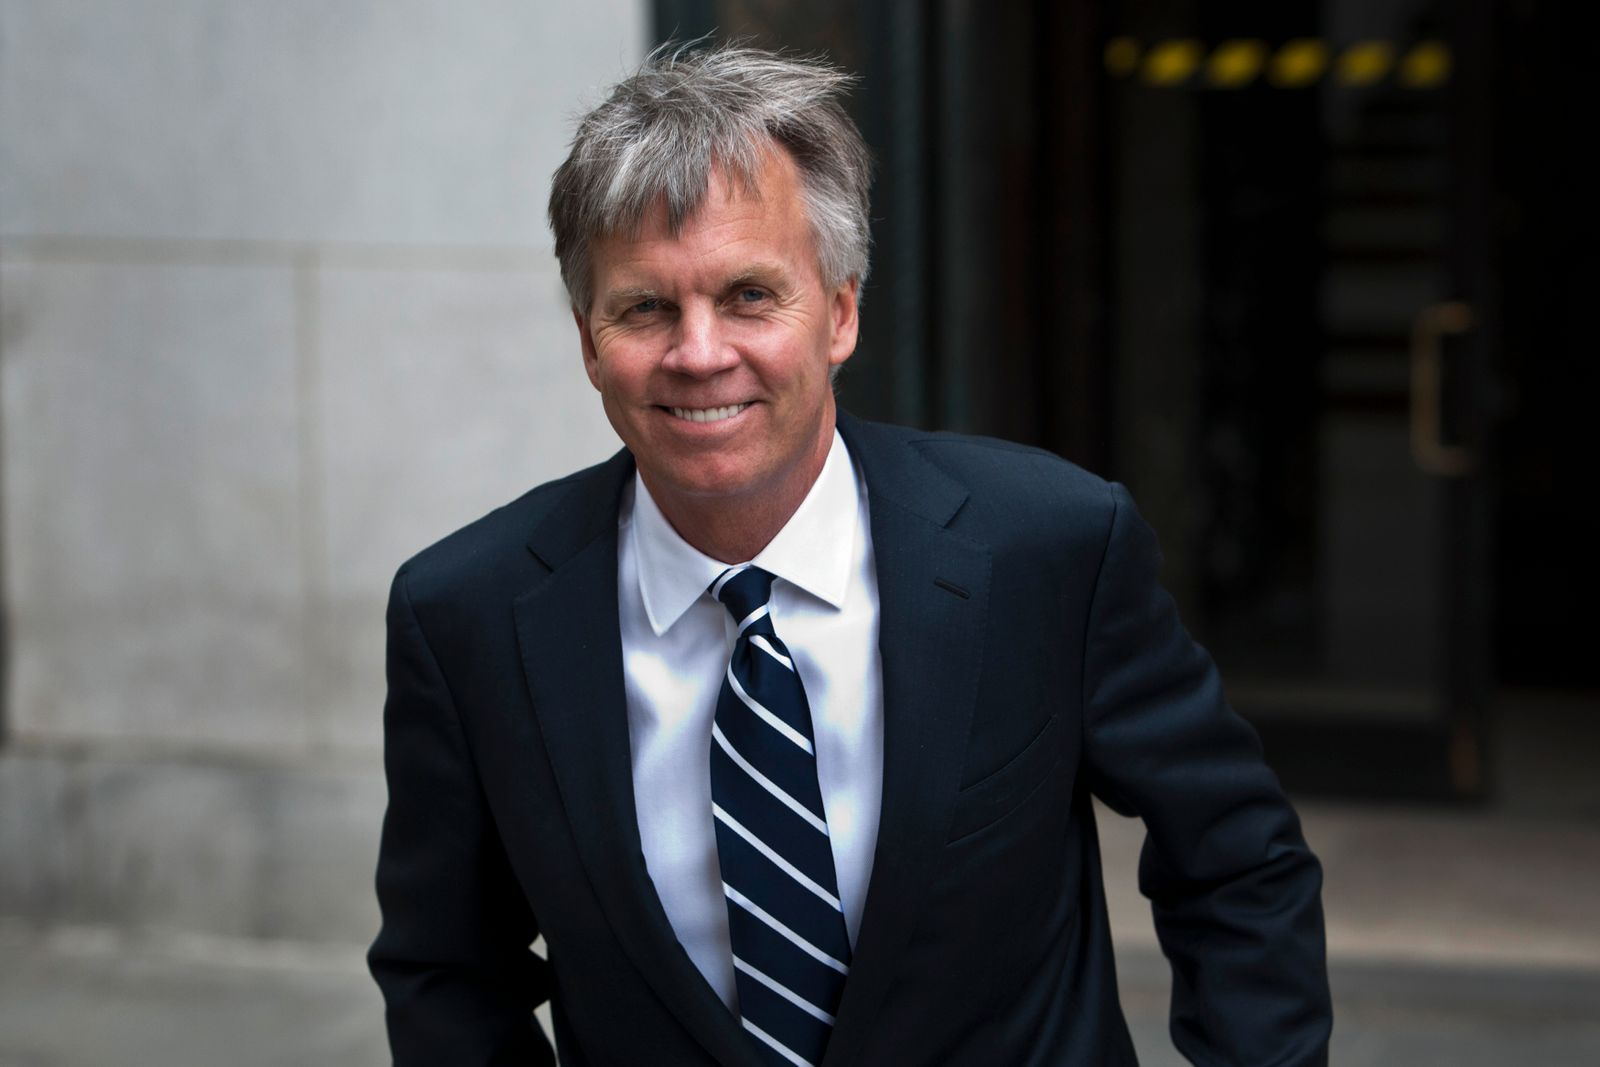 Ron Johnson, CEO of J.C. Penney, leaves New York State Supreme Court in New York